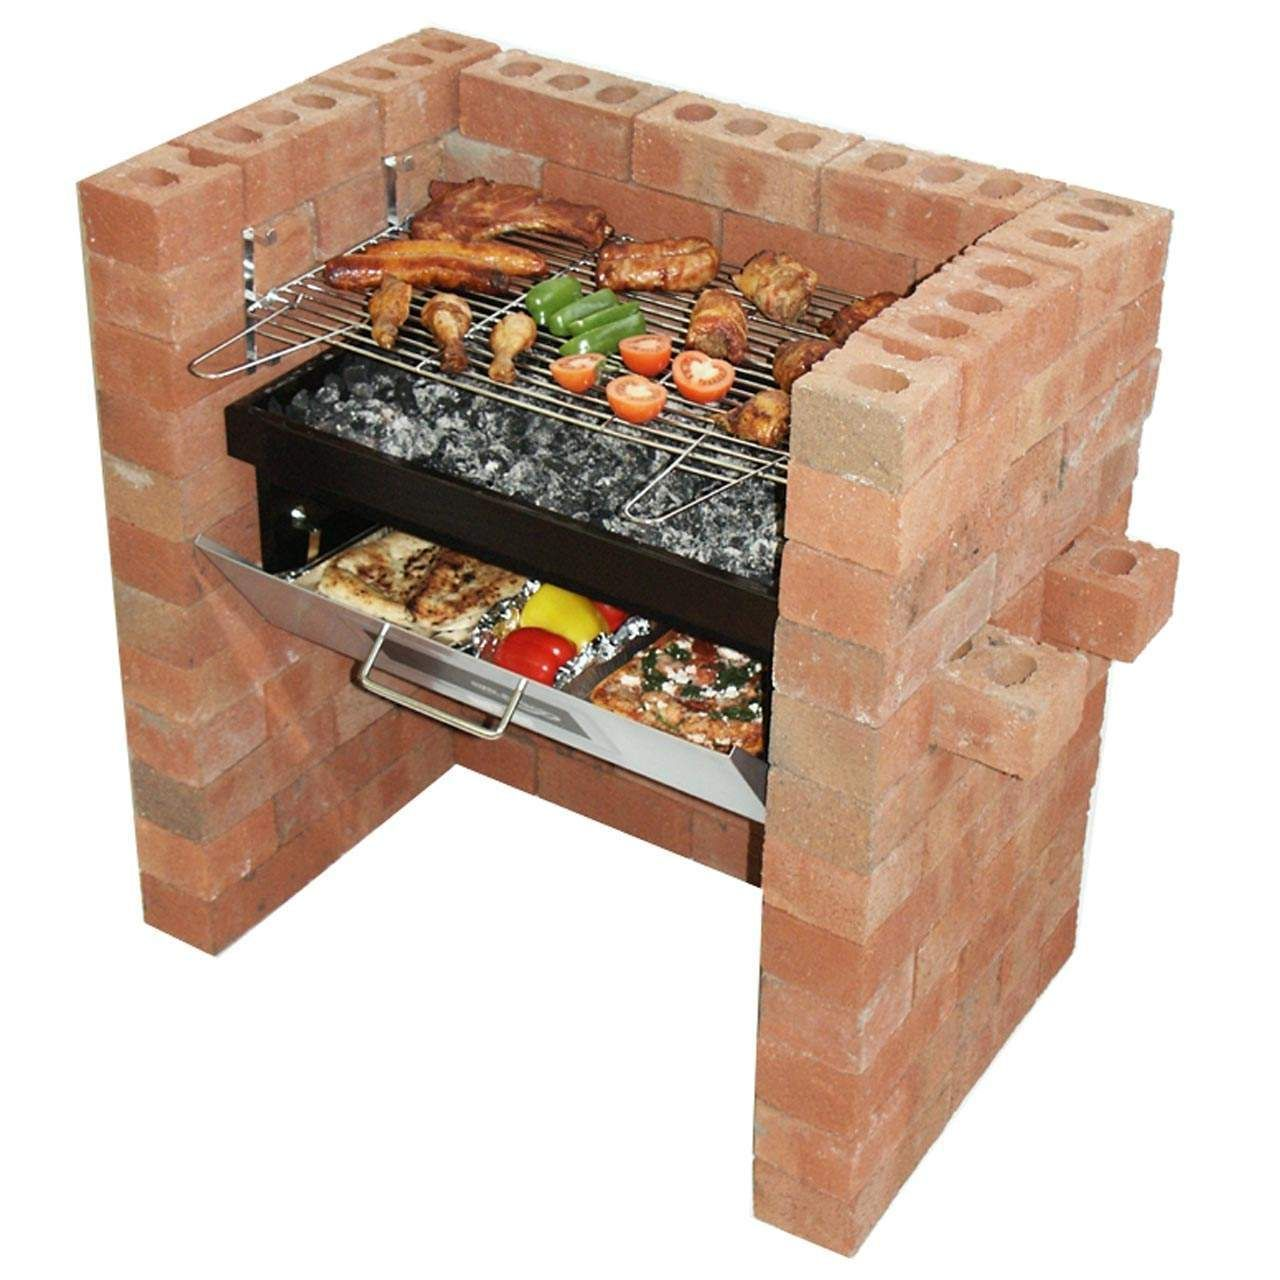 Brick Grills And Outdoor Countertops Building Your: Diy Charcoal Grill - Google Search